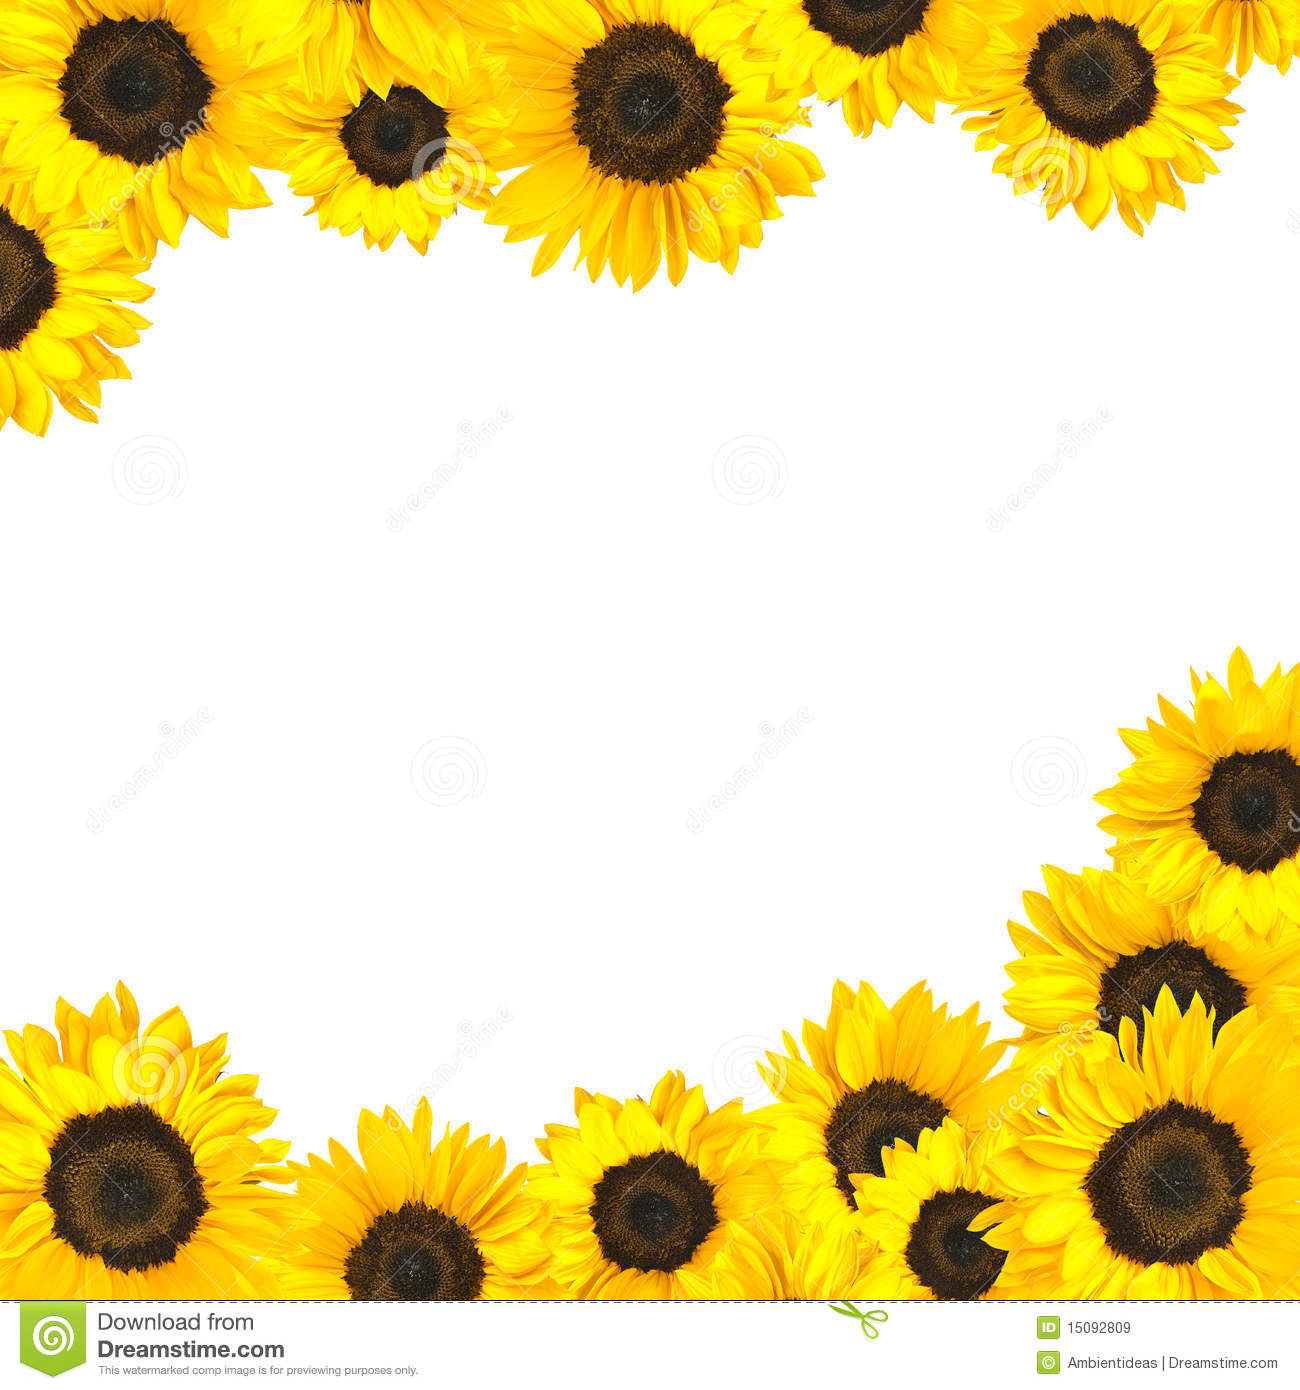 Sunflower Border Clipart | Free download on ClipArtMag